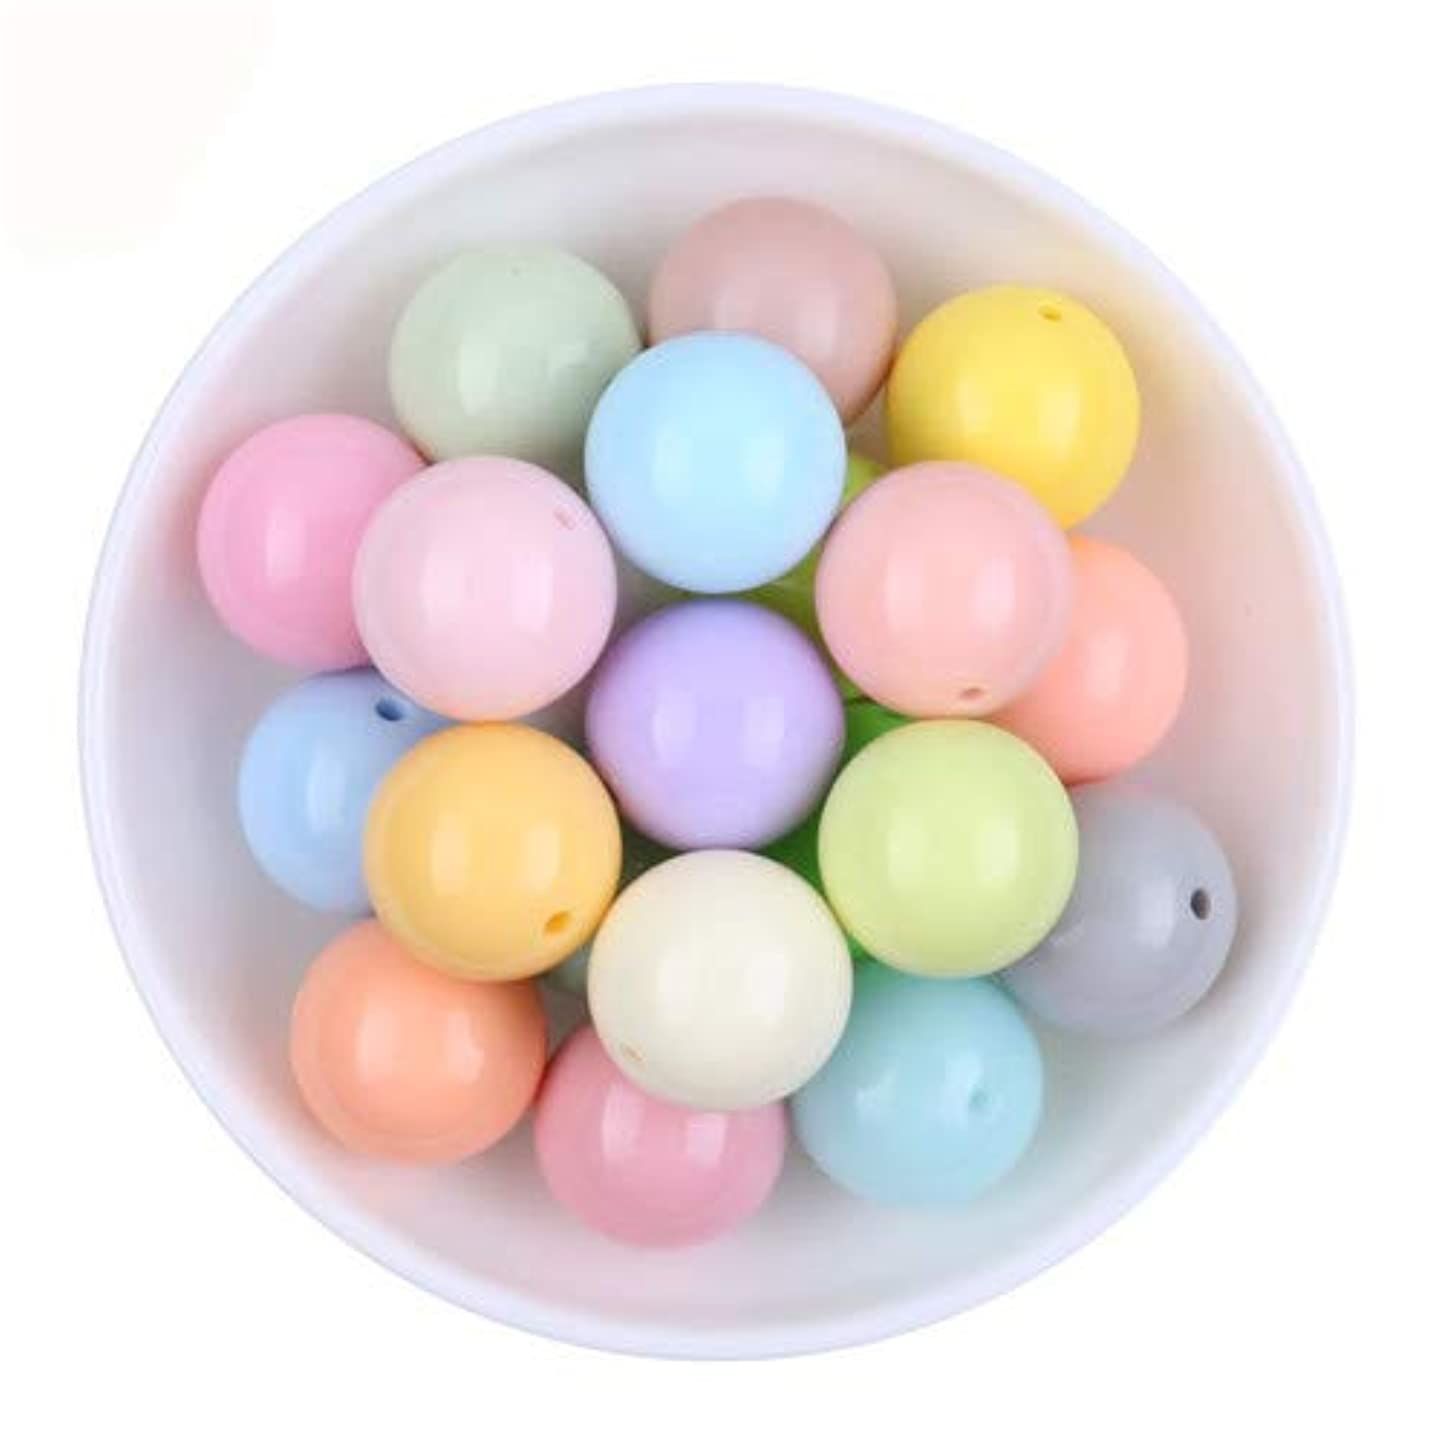 300PCs Mixed Color Big Chunky Gumball Bubblegum Acrylic Solid Beads Colorful Chunky Beads for Necklace Jewelry 6mm Making DIY Jewelry Findings DIY Gift